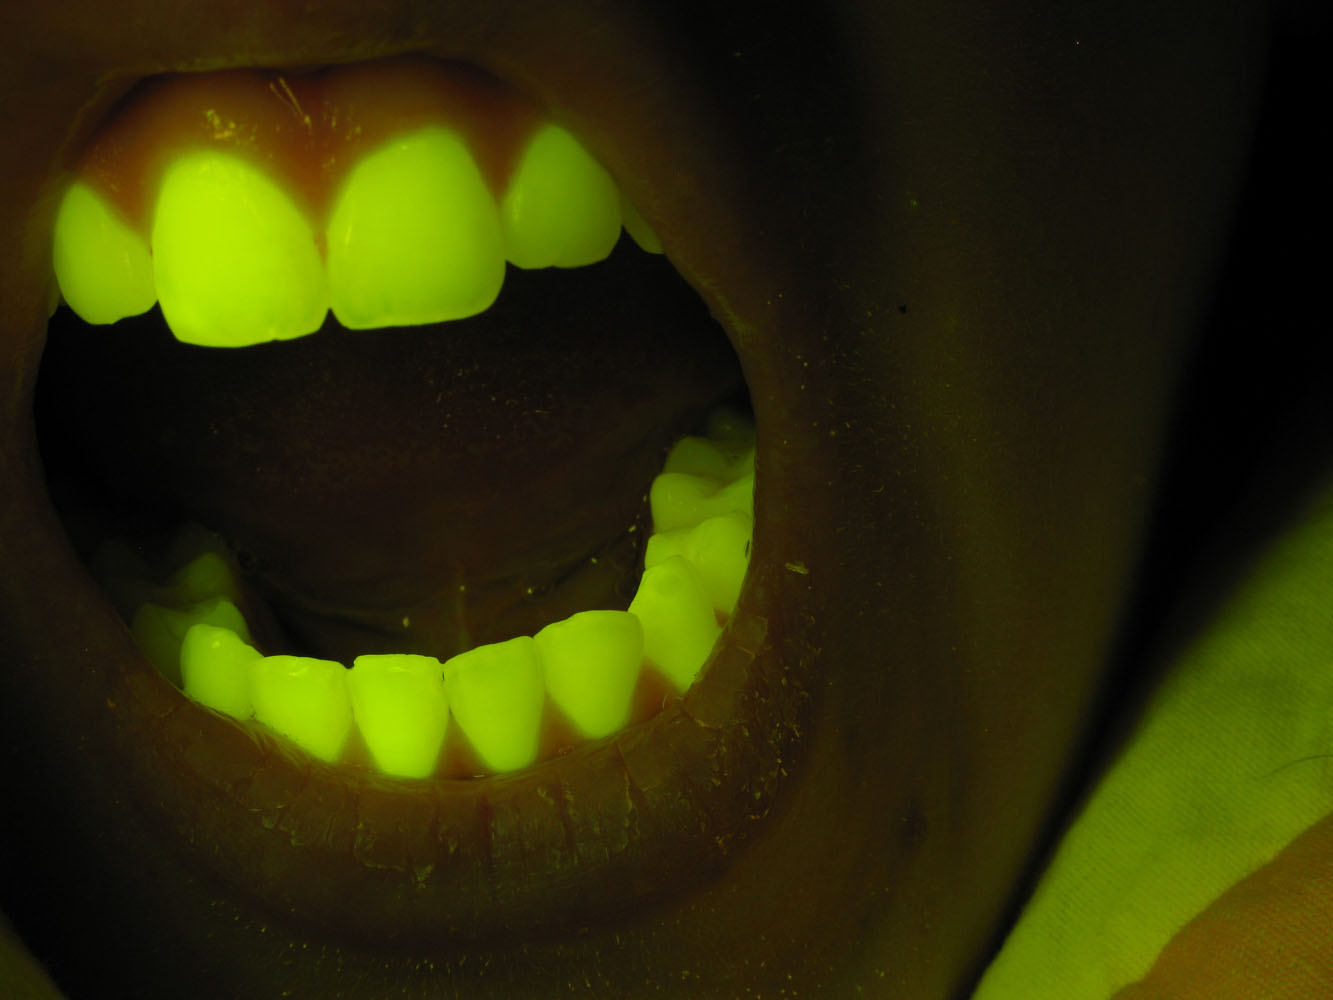 Teeth fluorescing